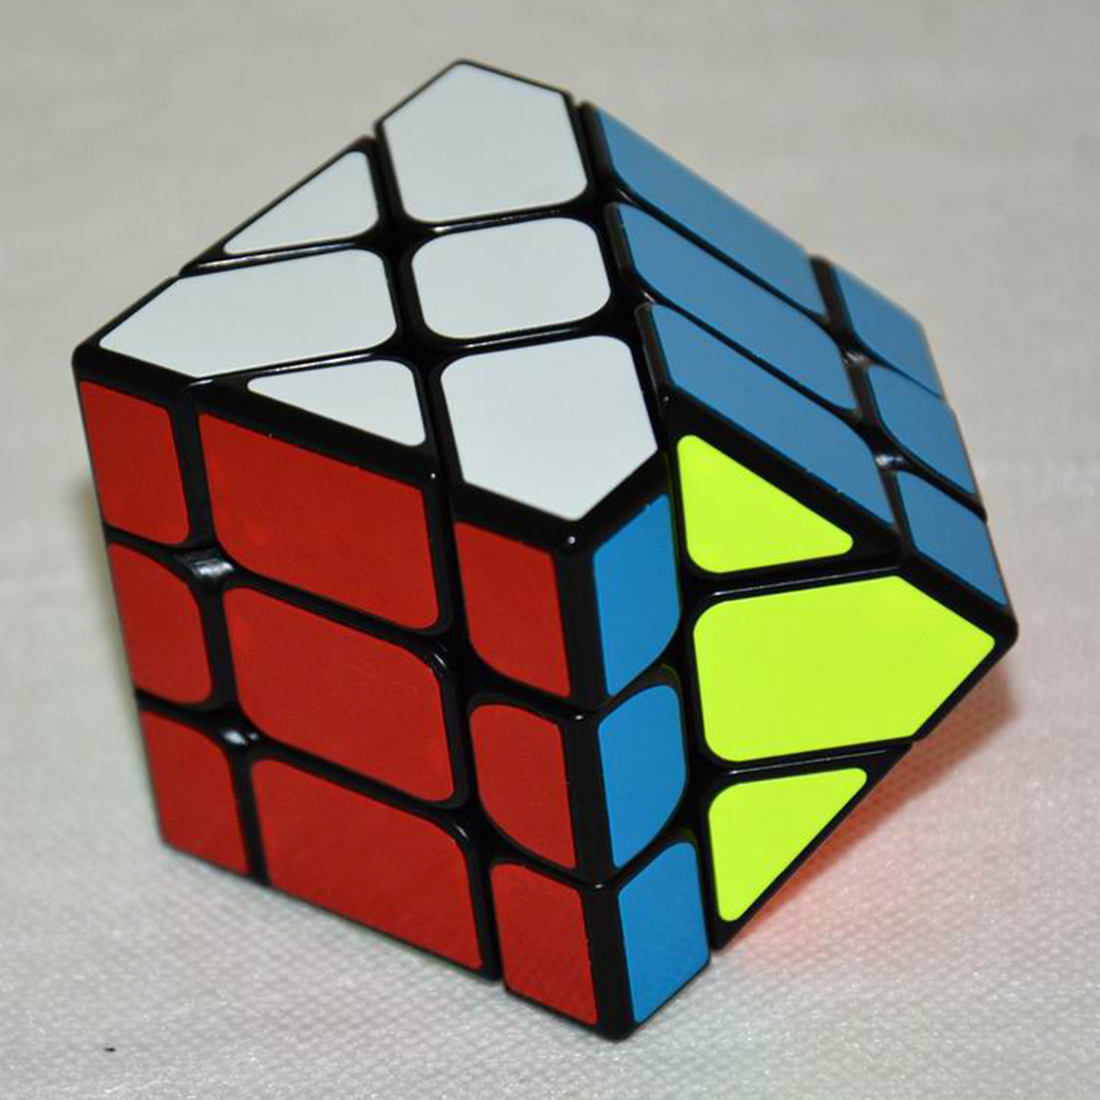 Image 5 - New Arrival YongJun YJ Speed 3X3X3 Fisher Cube Magic Cubes Speed Puzzle Learning Educational Toys For Children Kids cubo magico-in Magic Cubes from Toys & Hobbies